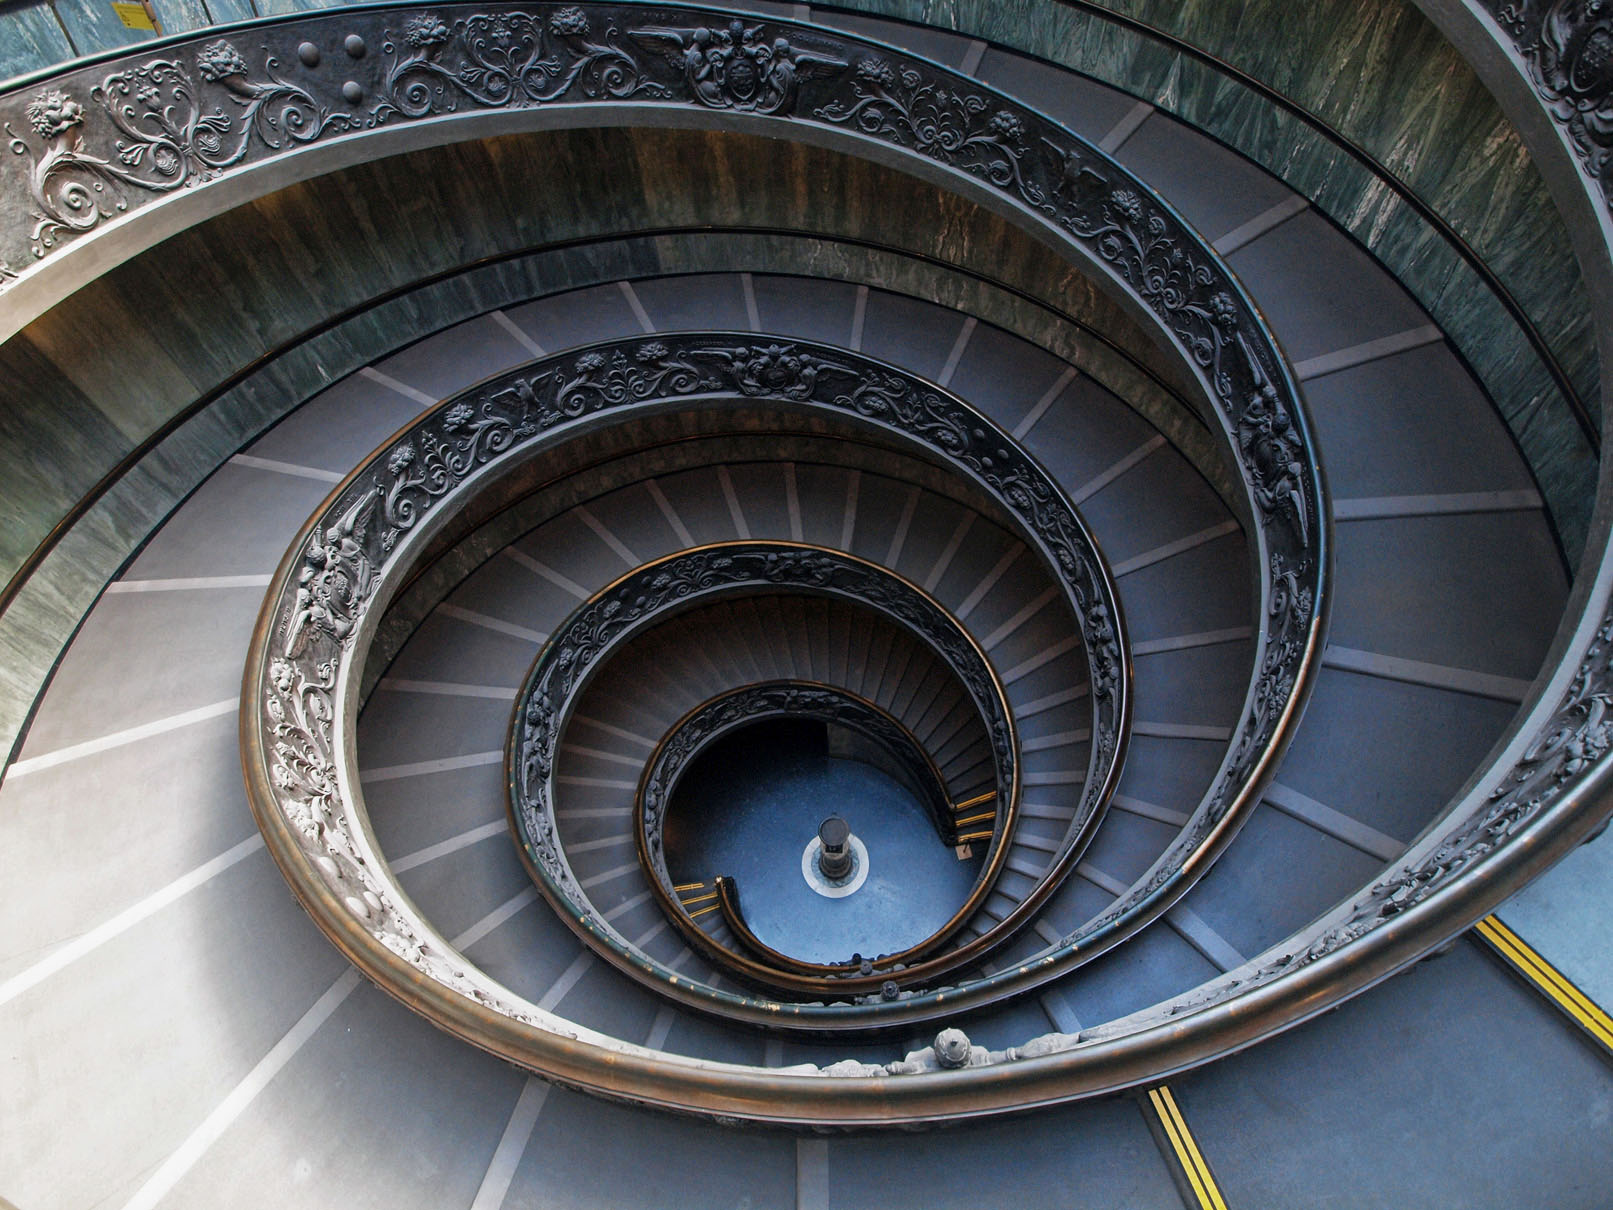 Vatican-Museum-Spiral-Staircase